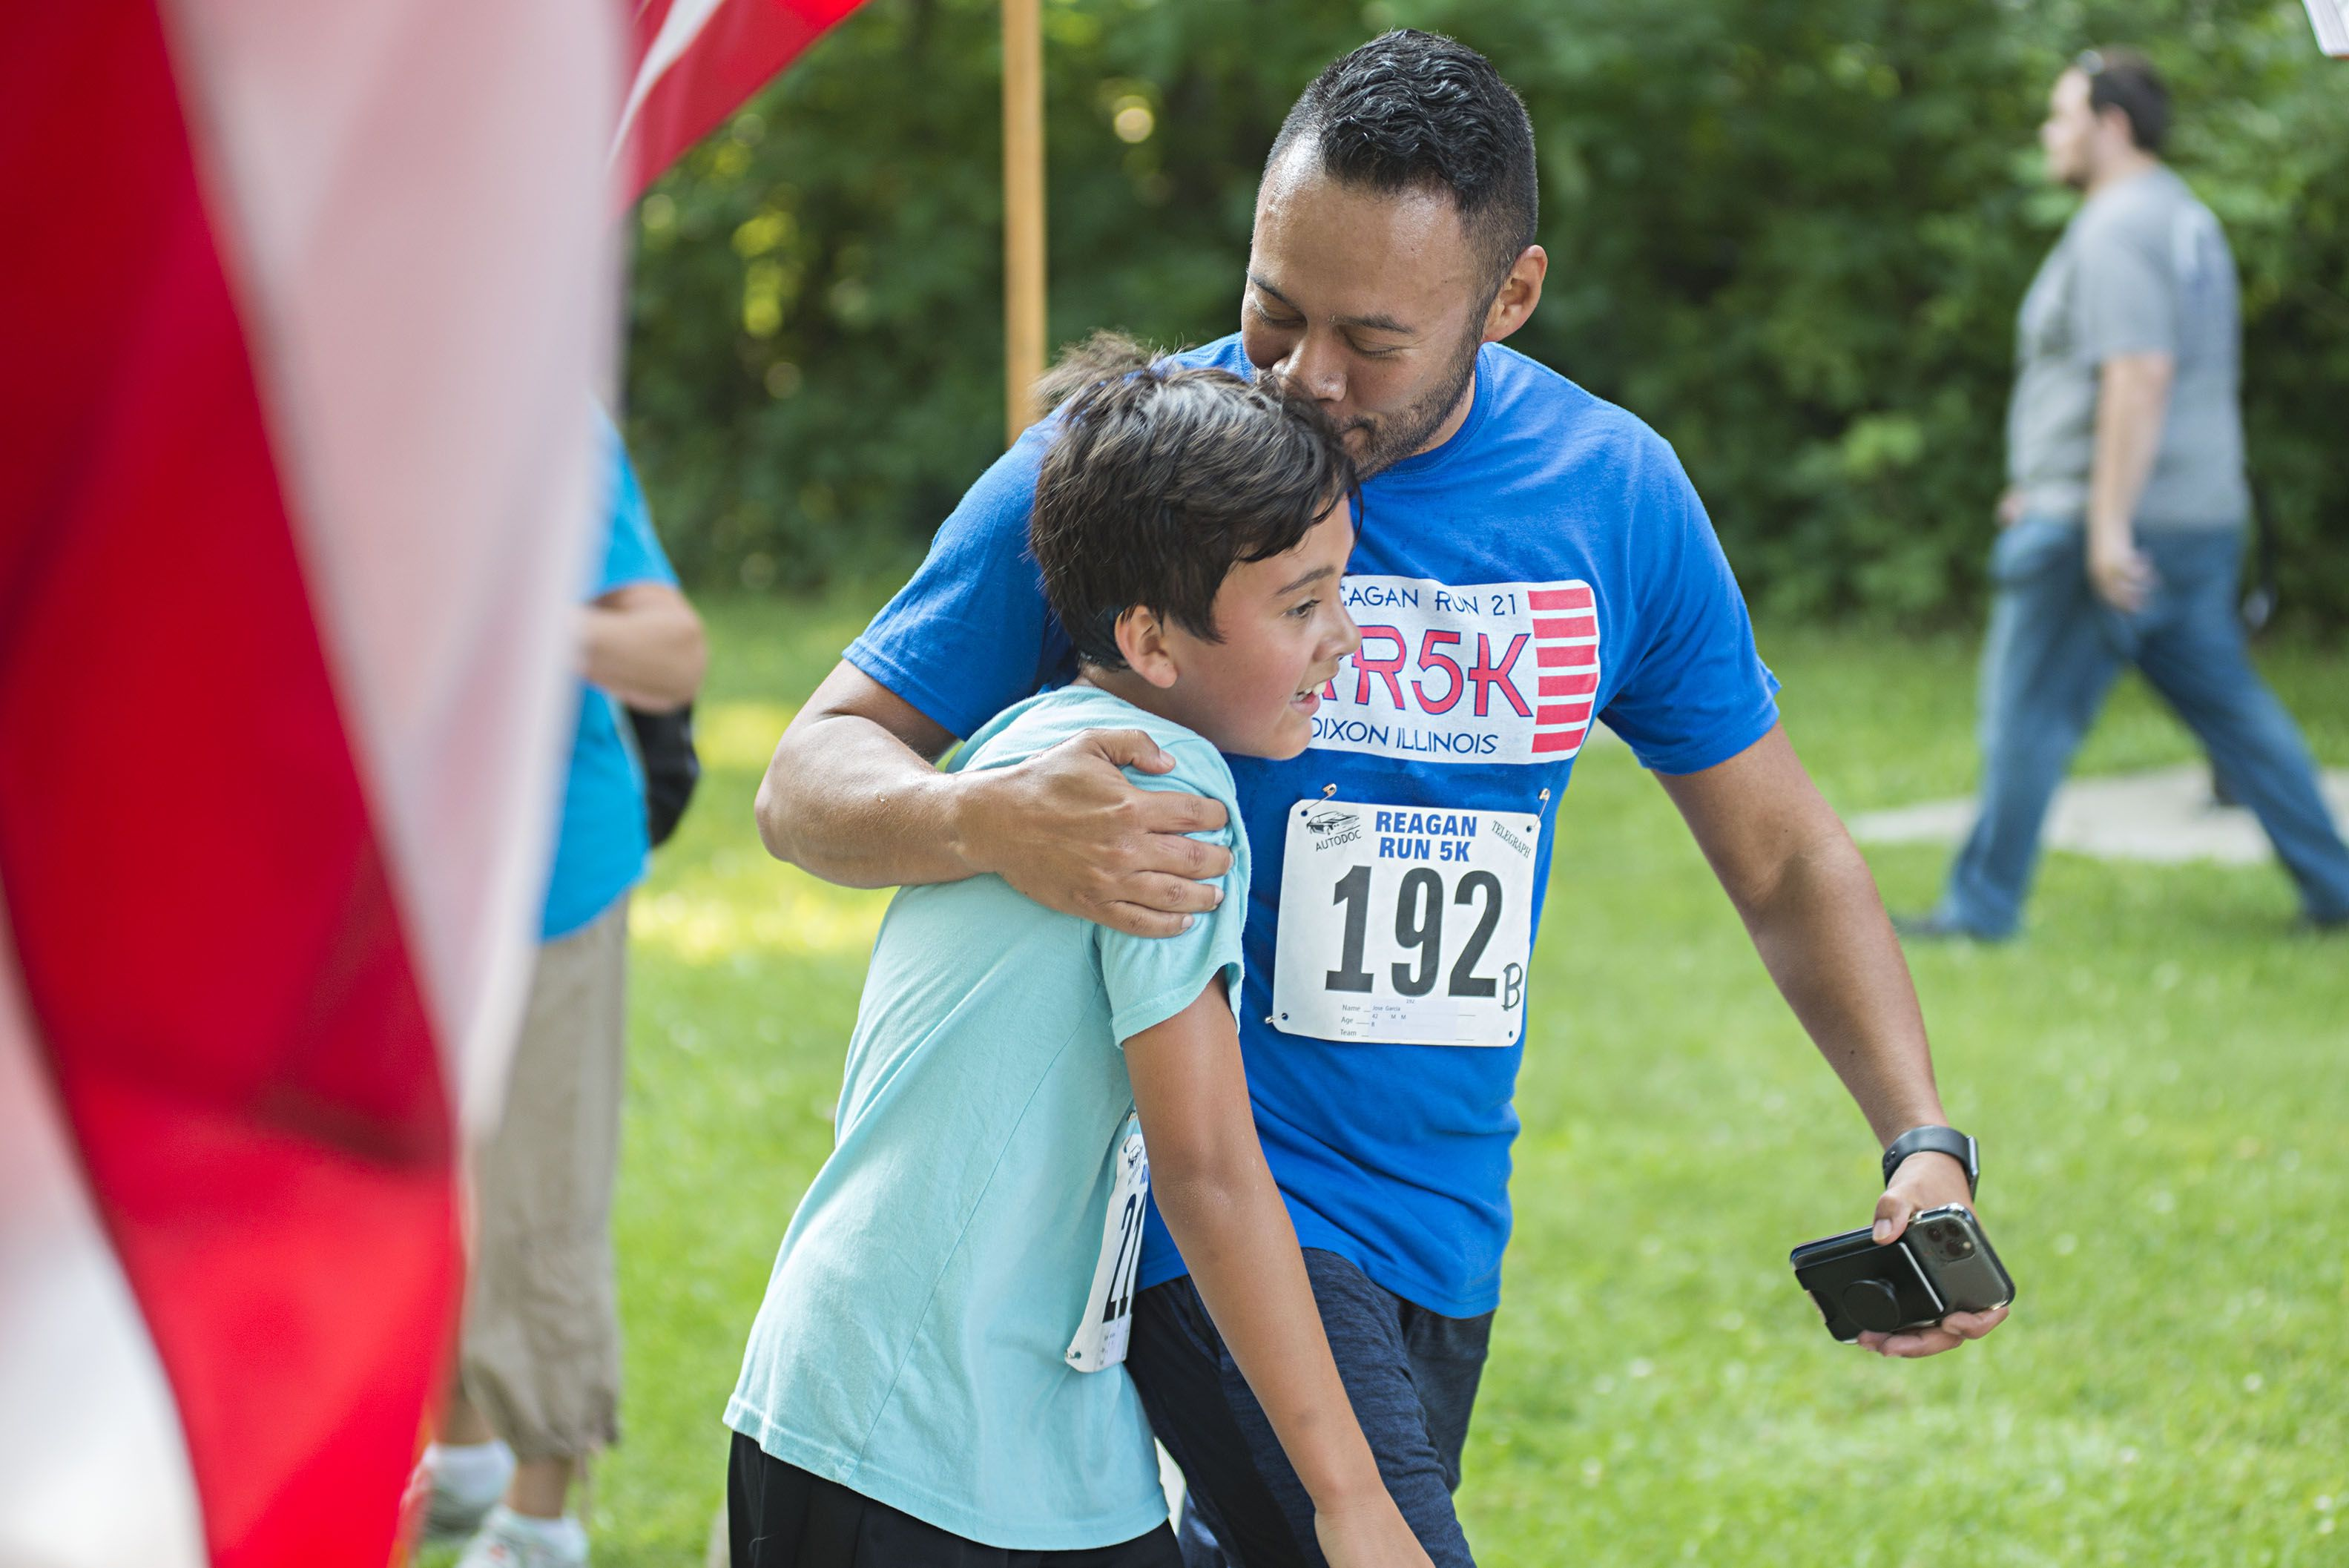 Jose Garcia kisses his son after the two complete their race Saturday in the 2021 Reagan Run.